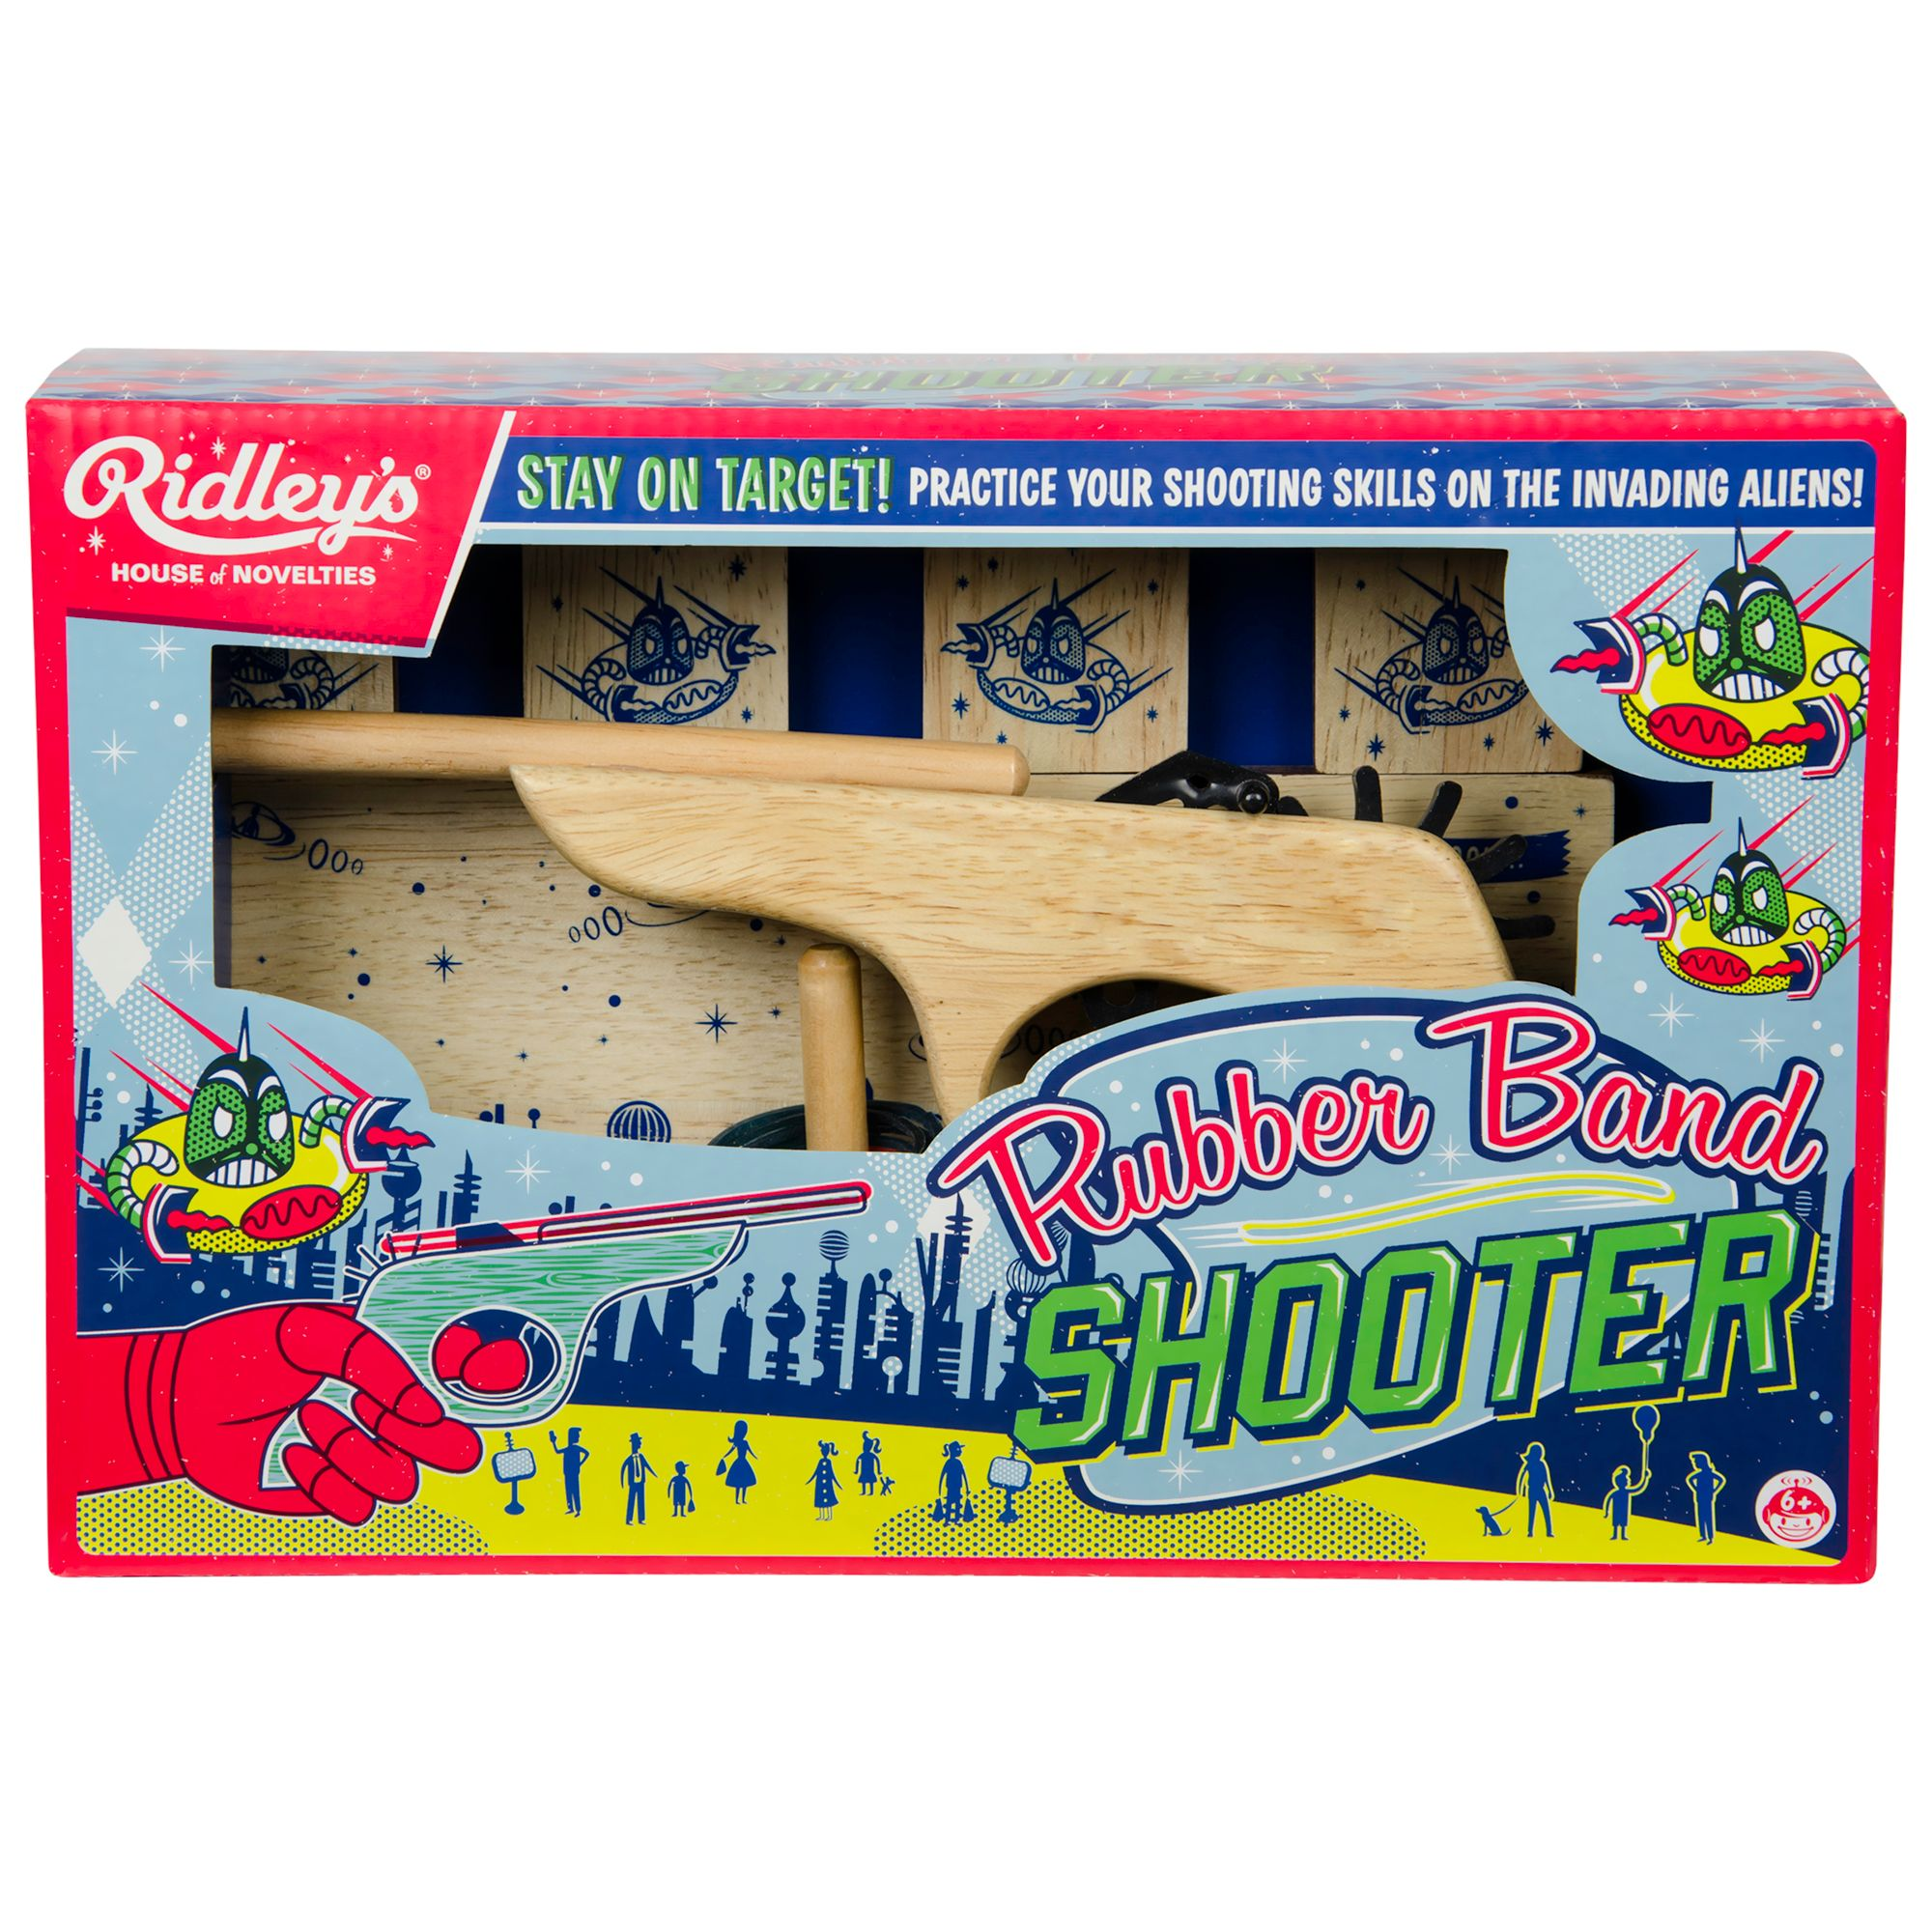 Ridley's Ridley's Rubber Band Shooter